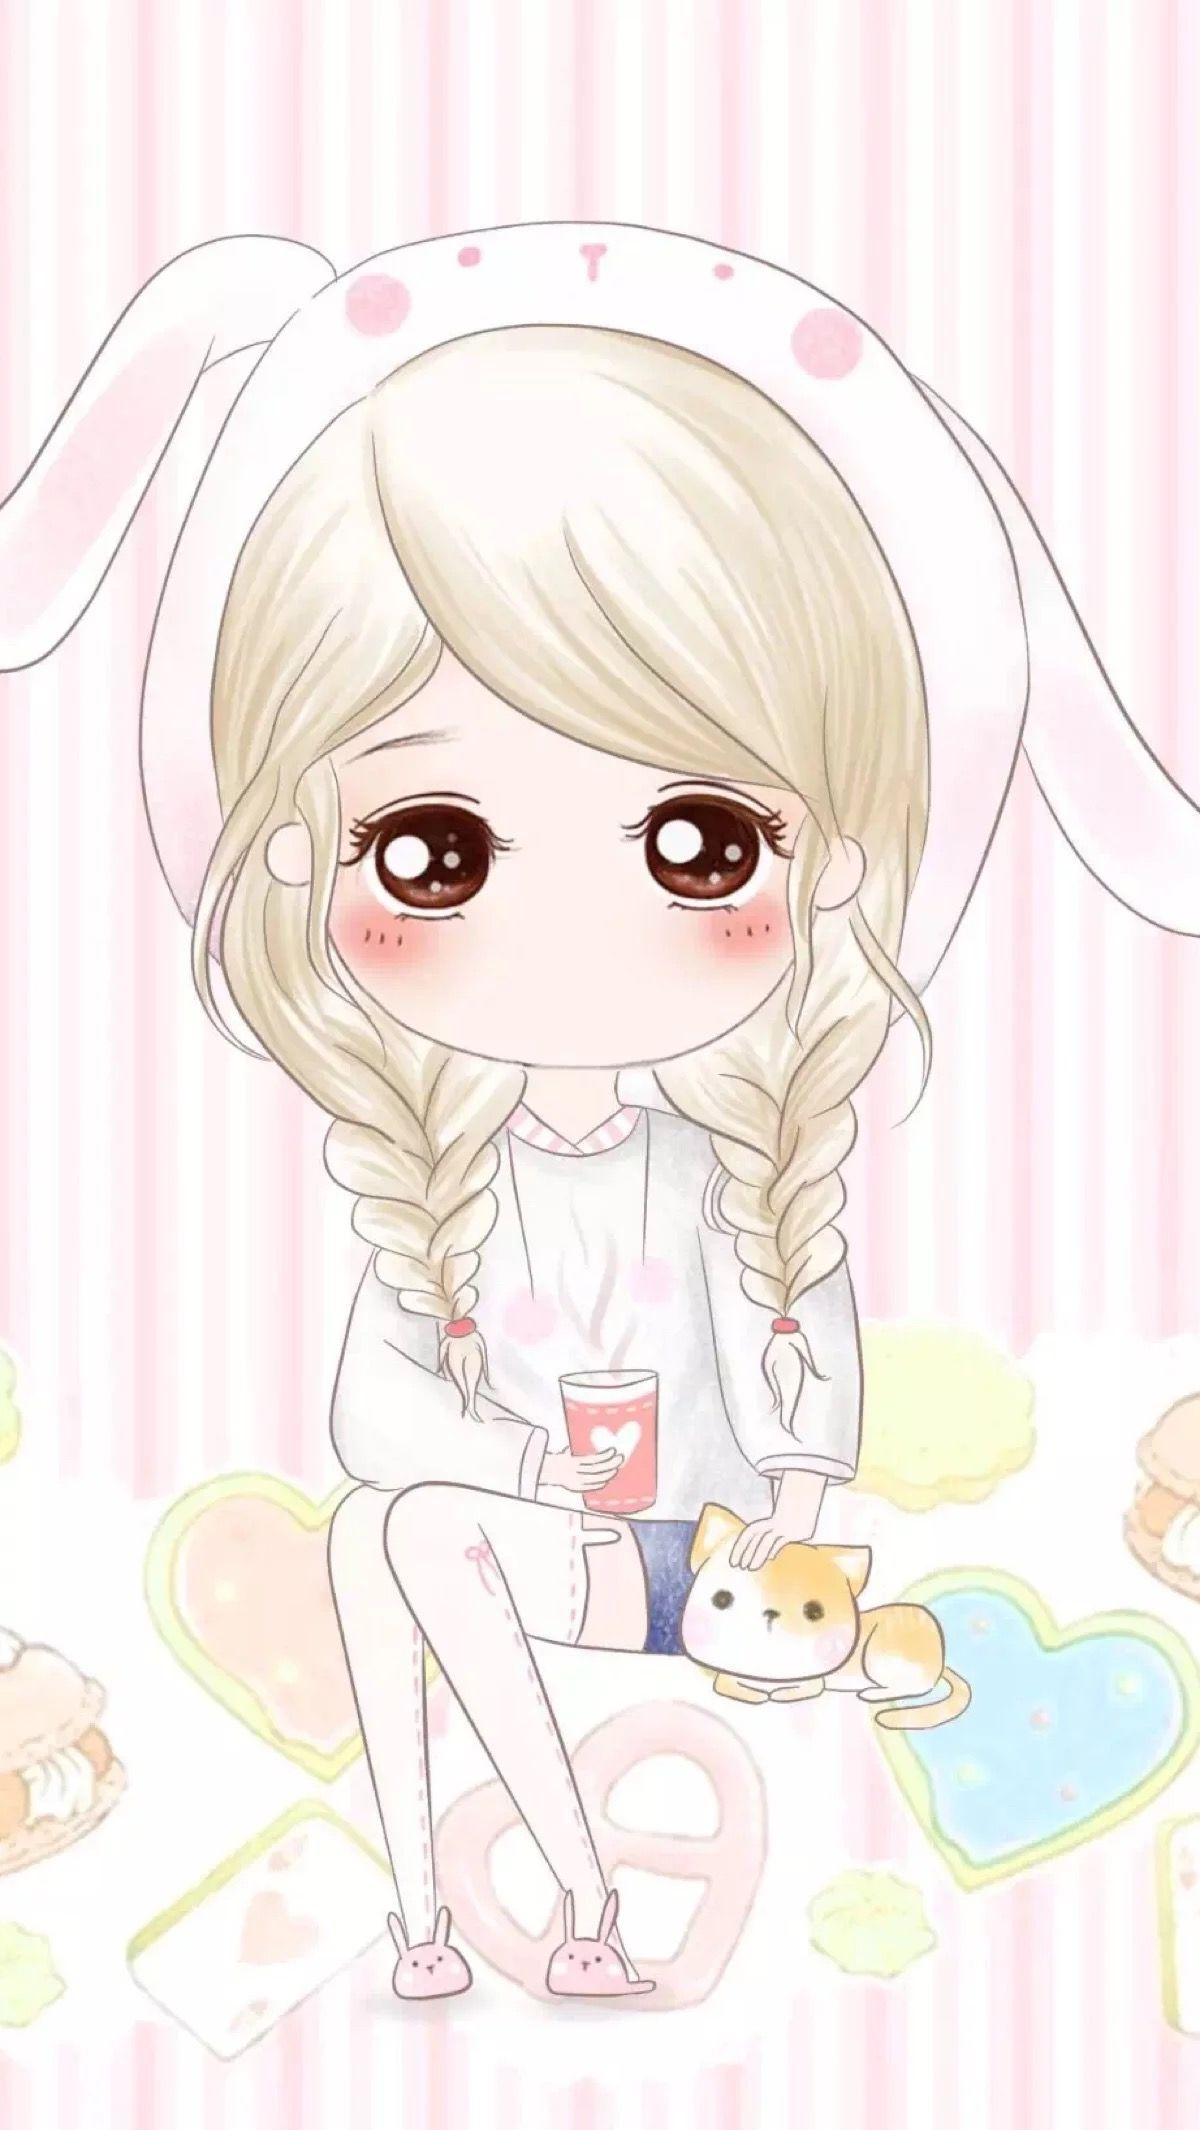 Anime Chibi Photos Chibi Girls and Cats Wallpapers